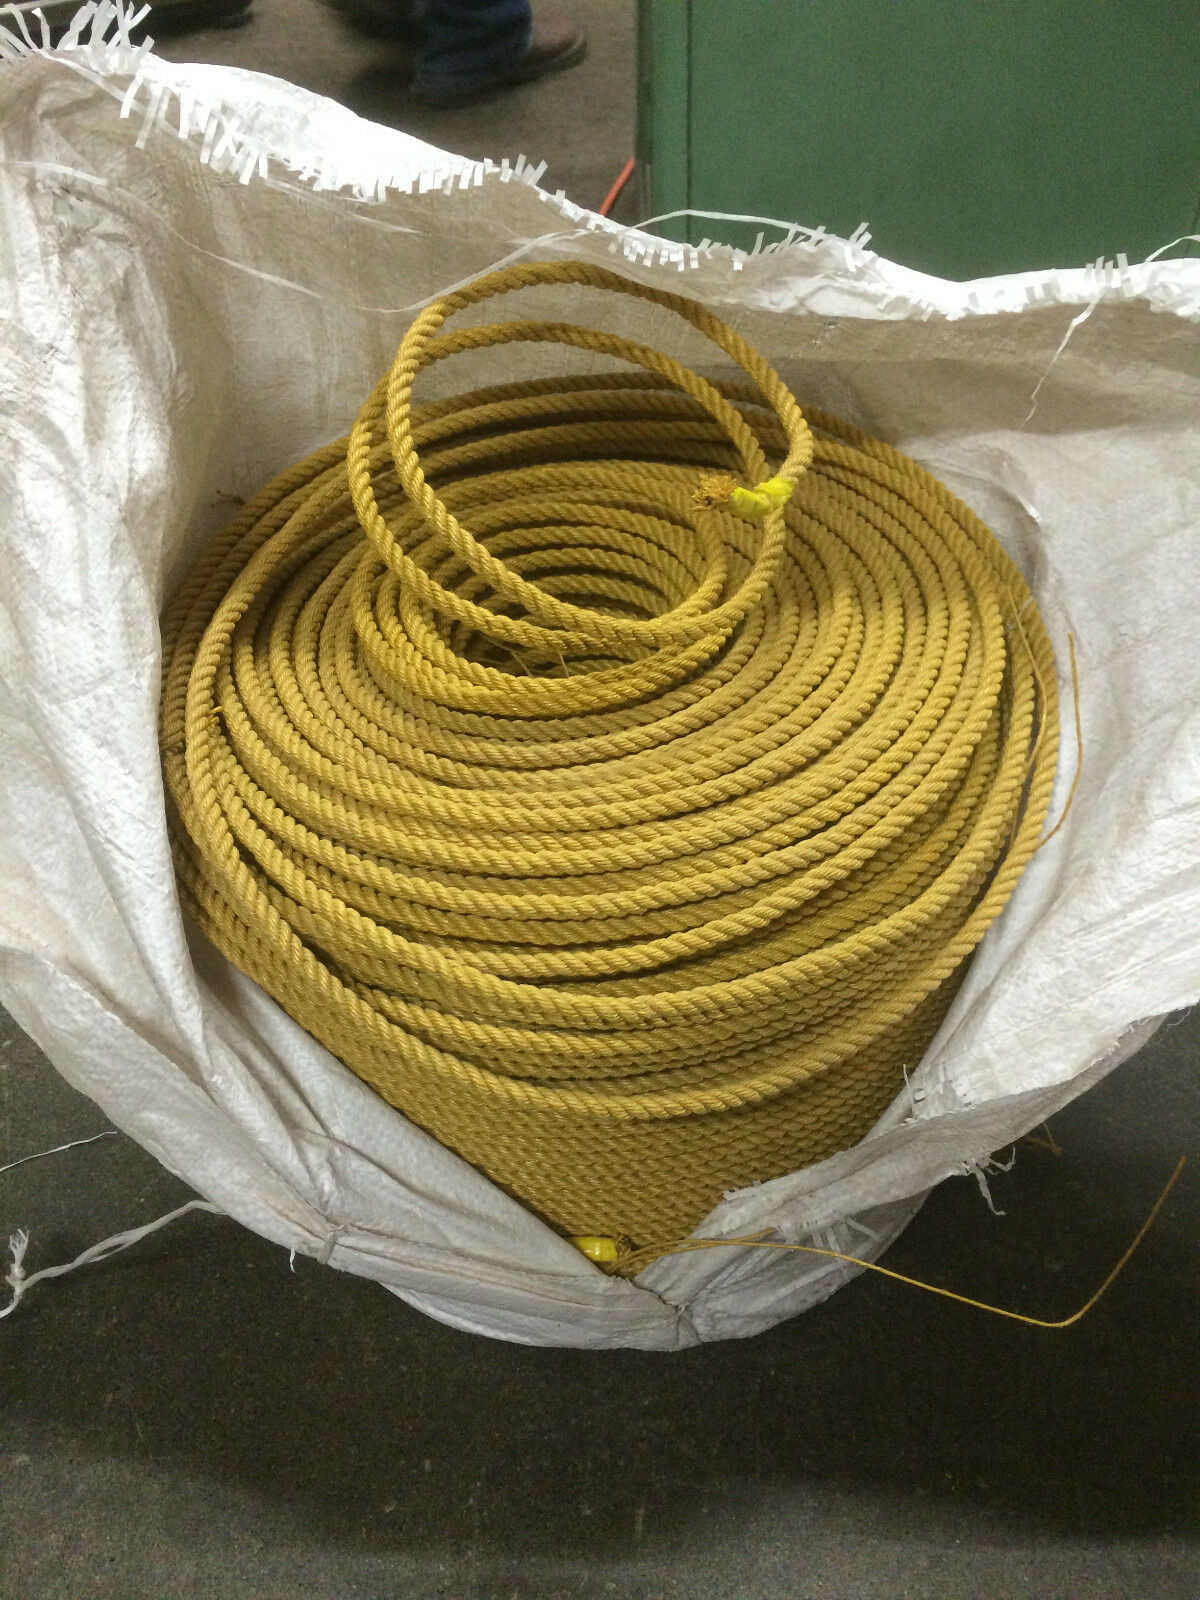 DEFECTIVE - 7.0mm (1 4 ) gold Rope, 3 Strand, 1300' Coil - Lariat Rope (Polyprop